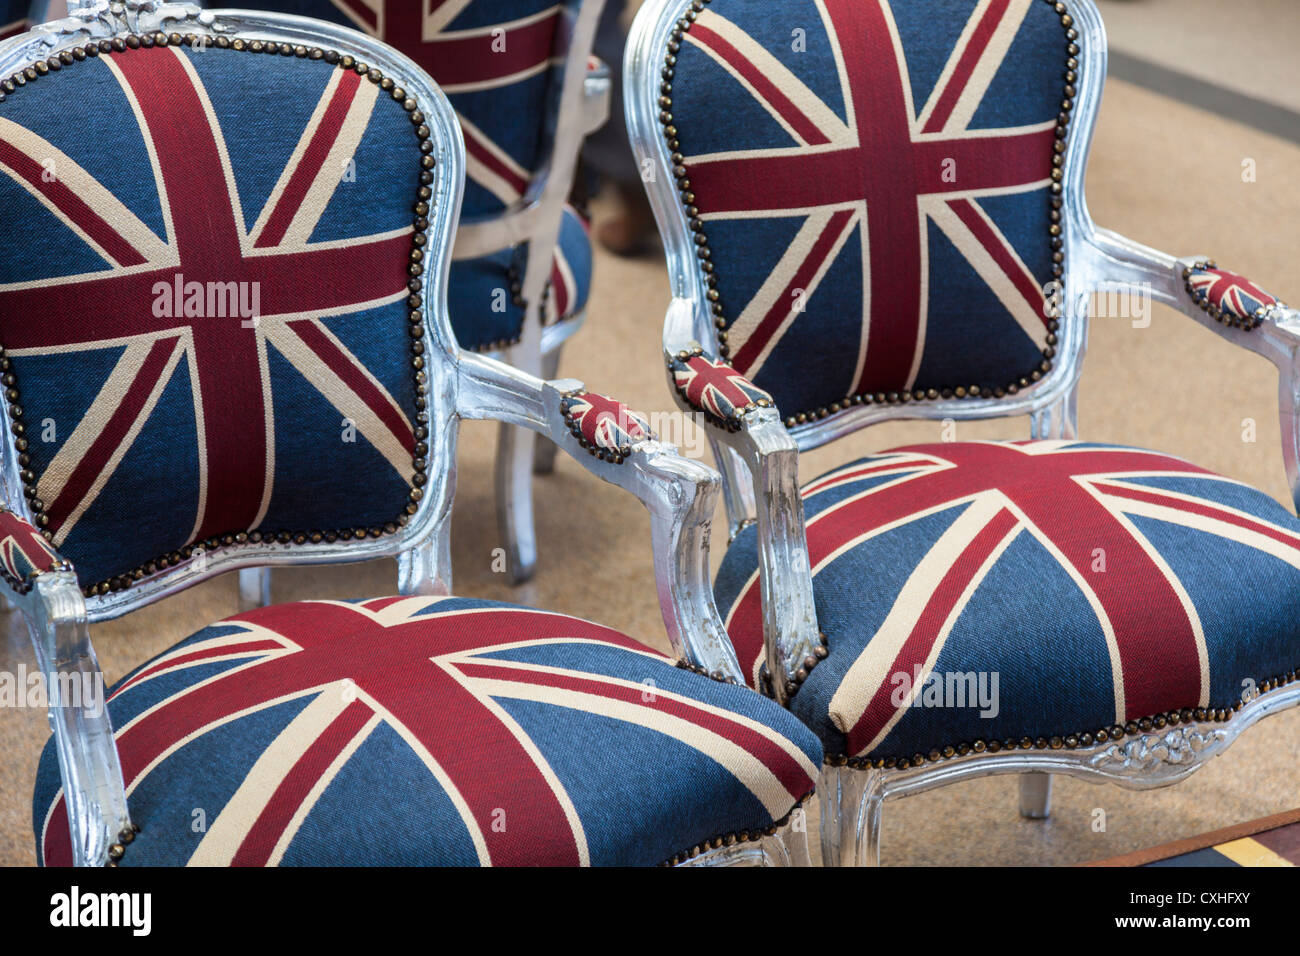 British Union Jack Flag Used As Upholstery For Chairs In Ascot Racecourse.  Berkshire, England, UK. Europe.